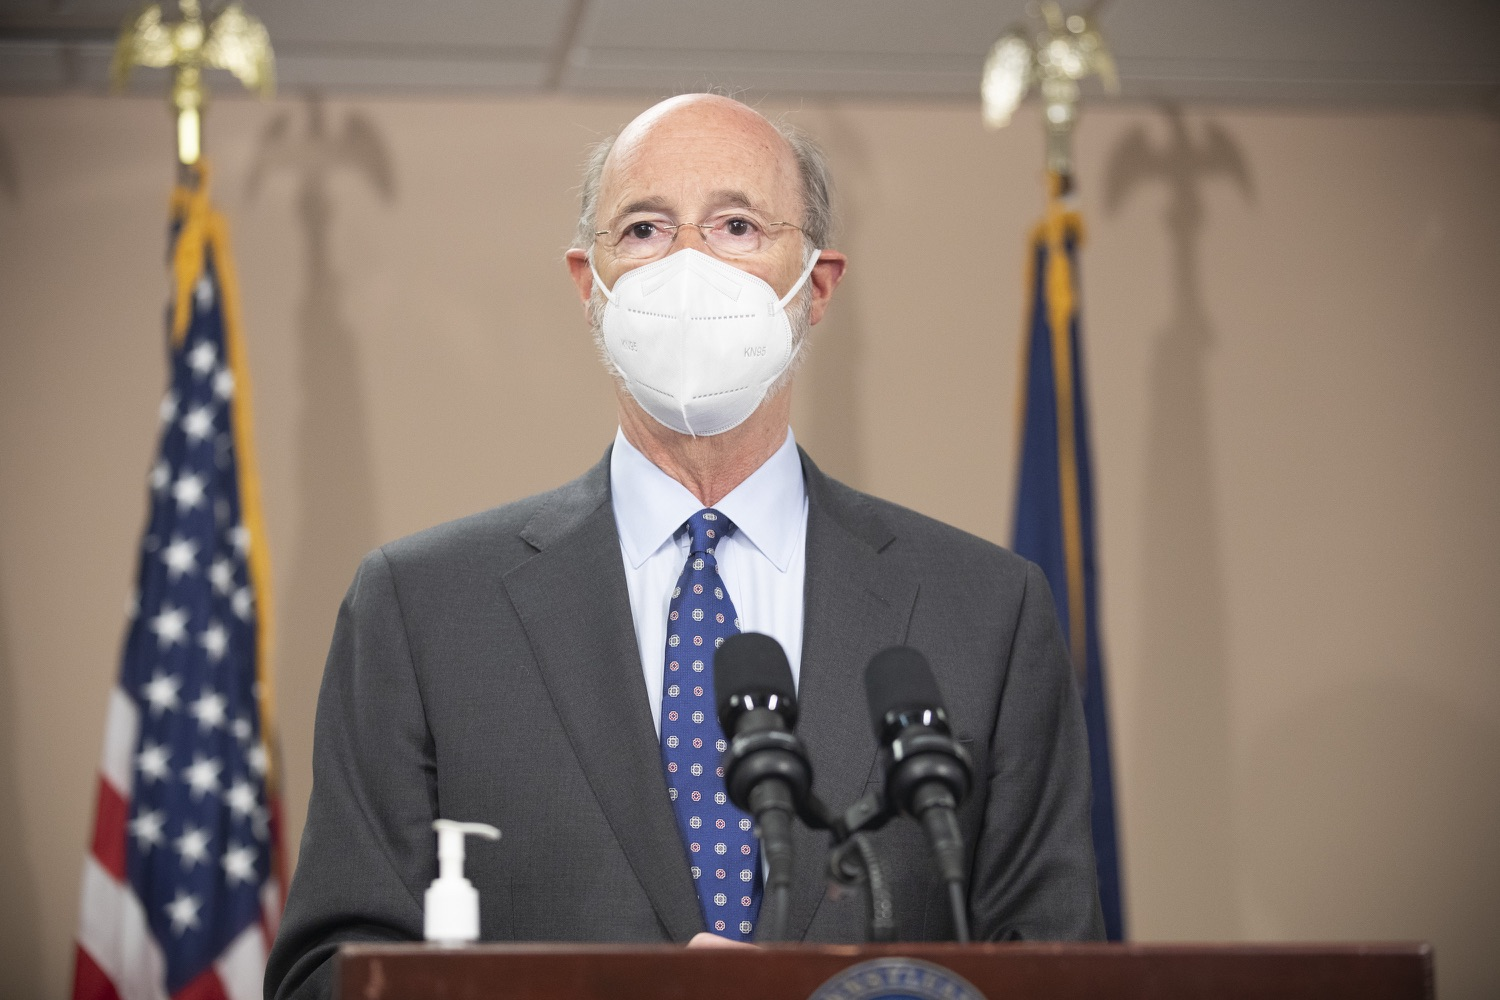 """<a href=""""https://filesource.wostreaming.net/commonwealthofpa/photo/18646_gov_vaccines_dz_015.jpg"""" target=""""_blank"""">⇣Download Photo<br></a>Pennsylvania Governor Tom Wolf speaking with the press.  After vaccinating more than 112,500 teachers and school staff in only about three weeks, Governor Tom Wolf visited Luzerne County today to announce the special vaccination initiative is a success and was completed ahead of schedule. The accomplishment is an important step to help more students and teachers safely return to classrooms across the state.  Kingston, PA - April 2, 2021"""